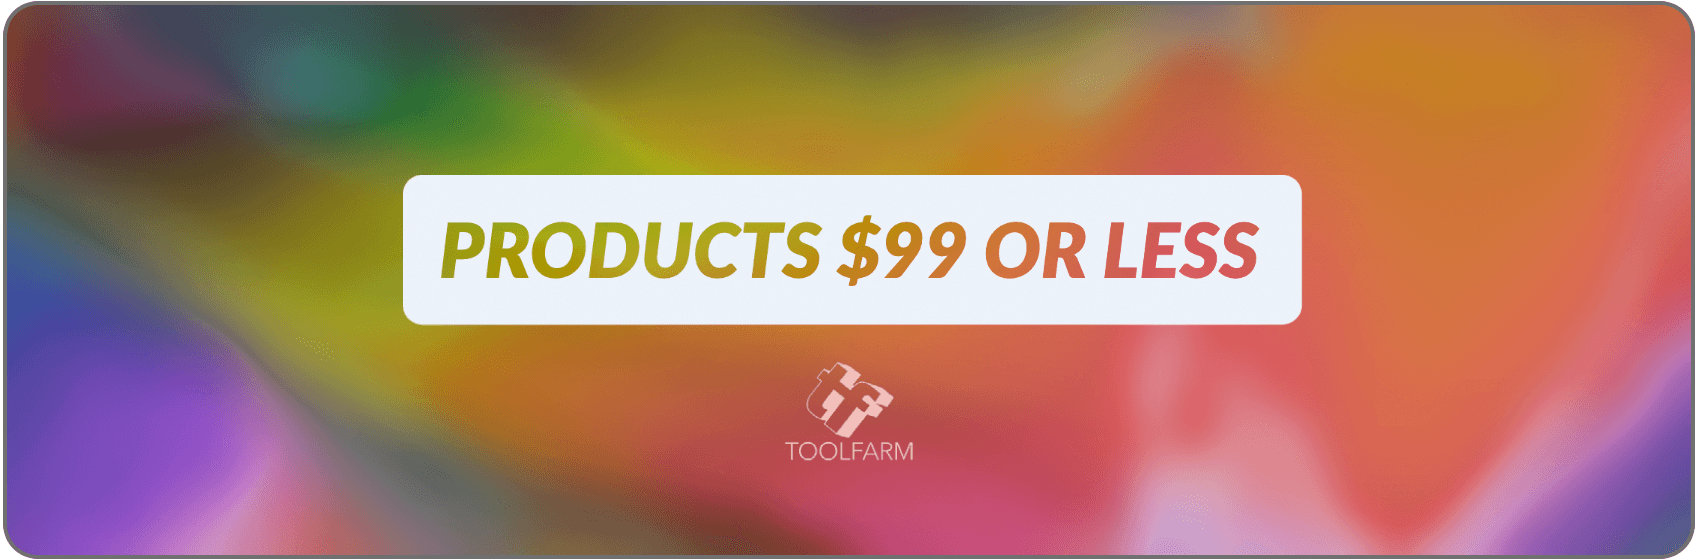 products $99 or less